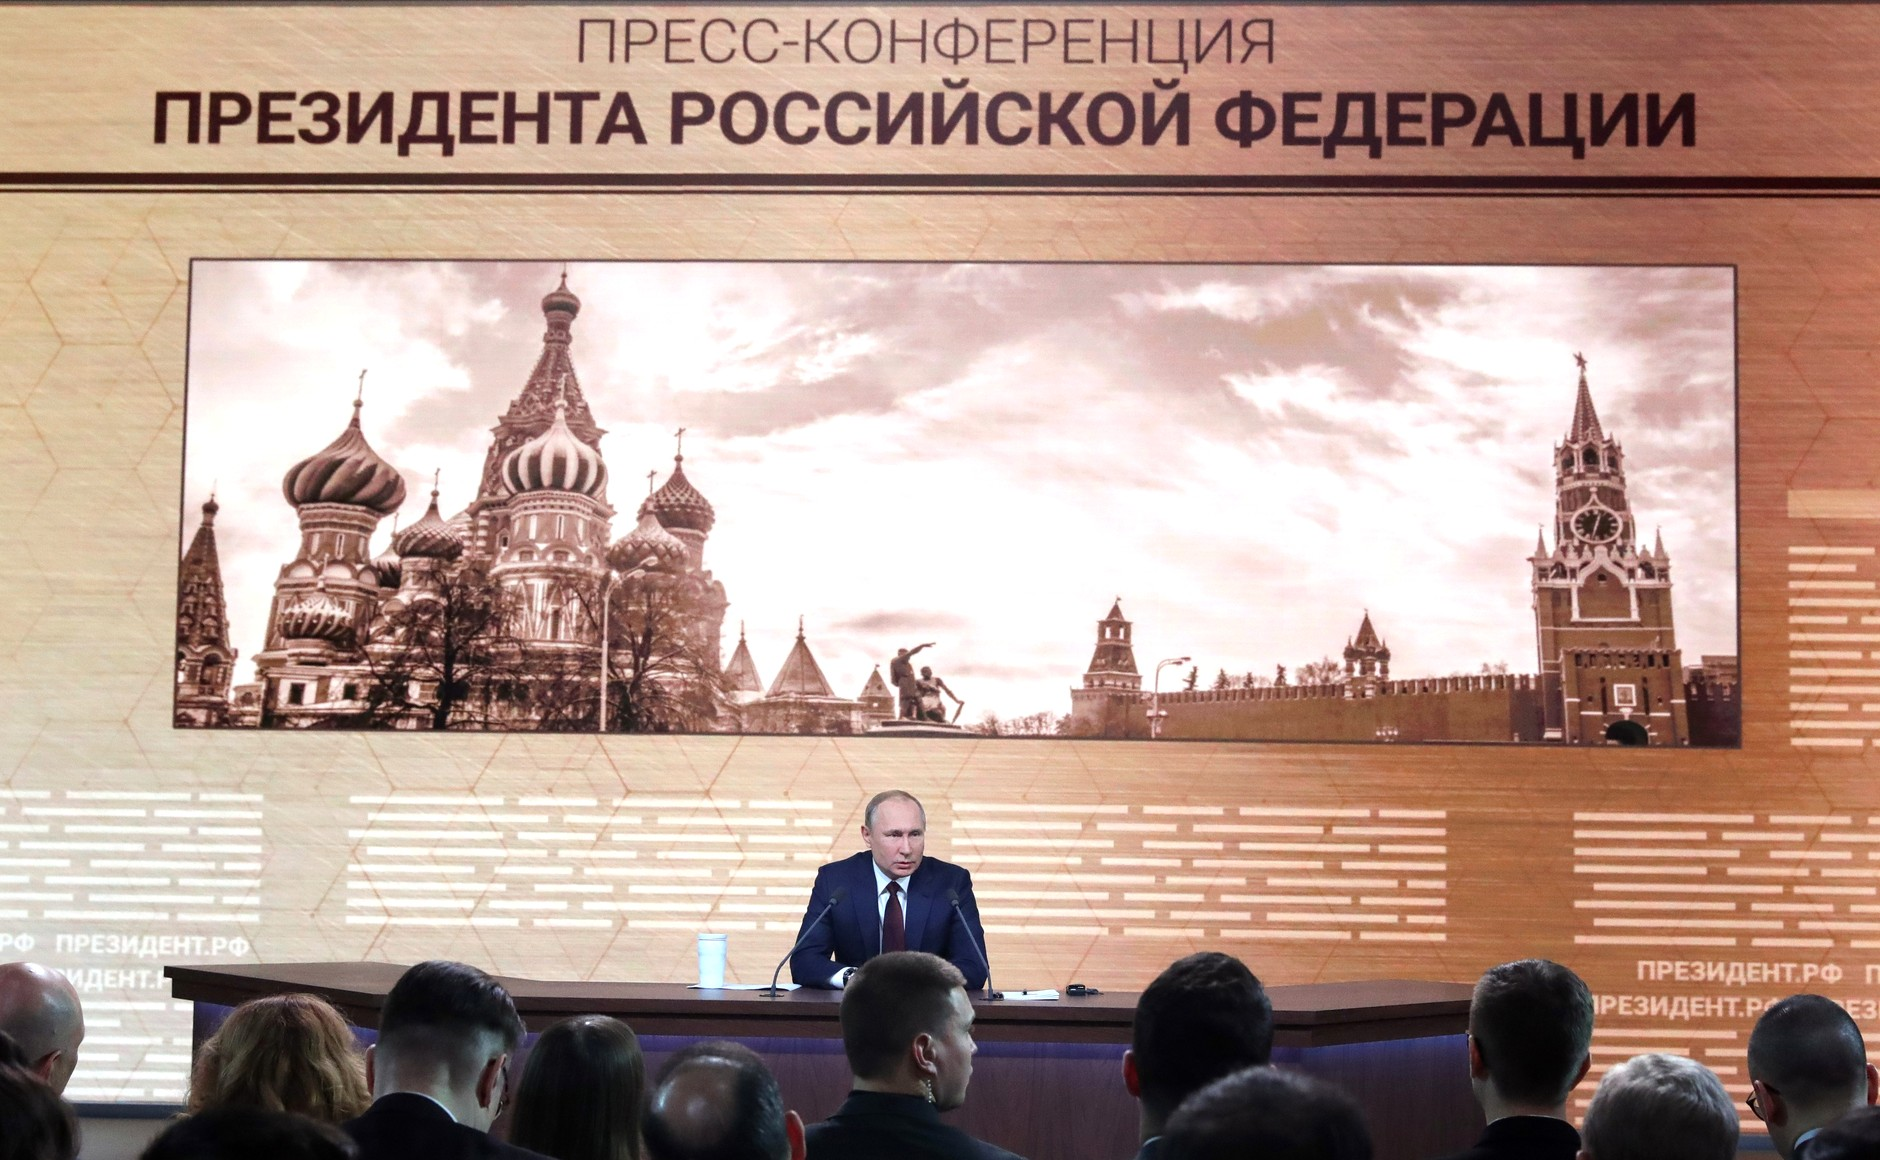 Russia This Week – Focus On Putin's Annual News Conference – December 22, 2019